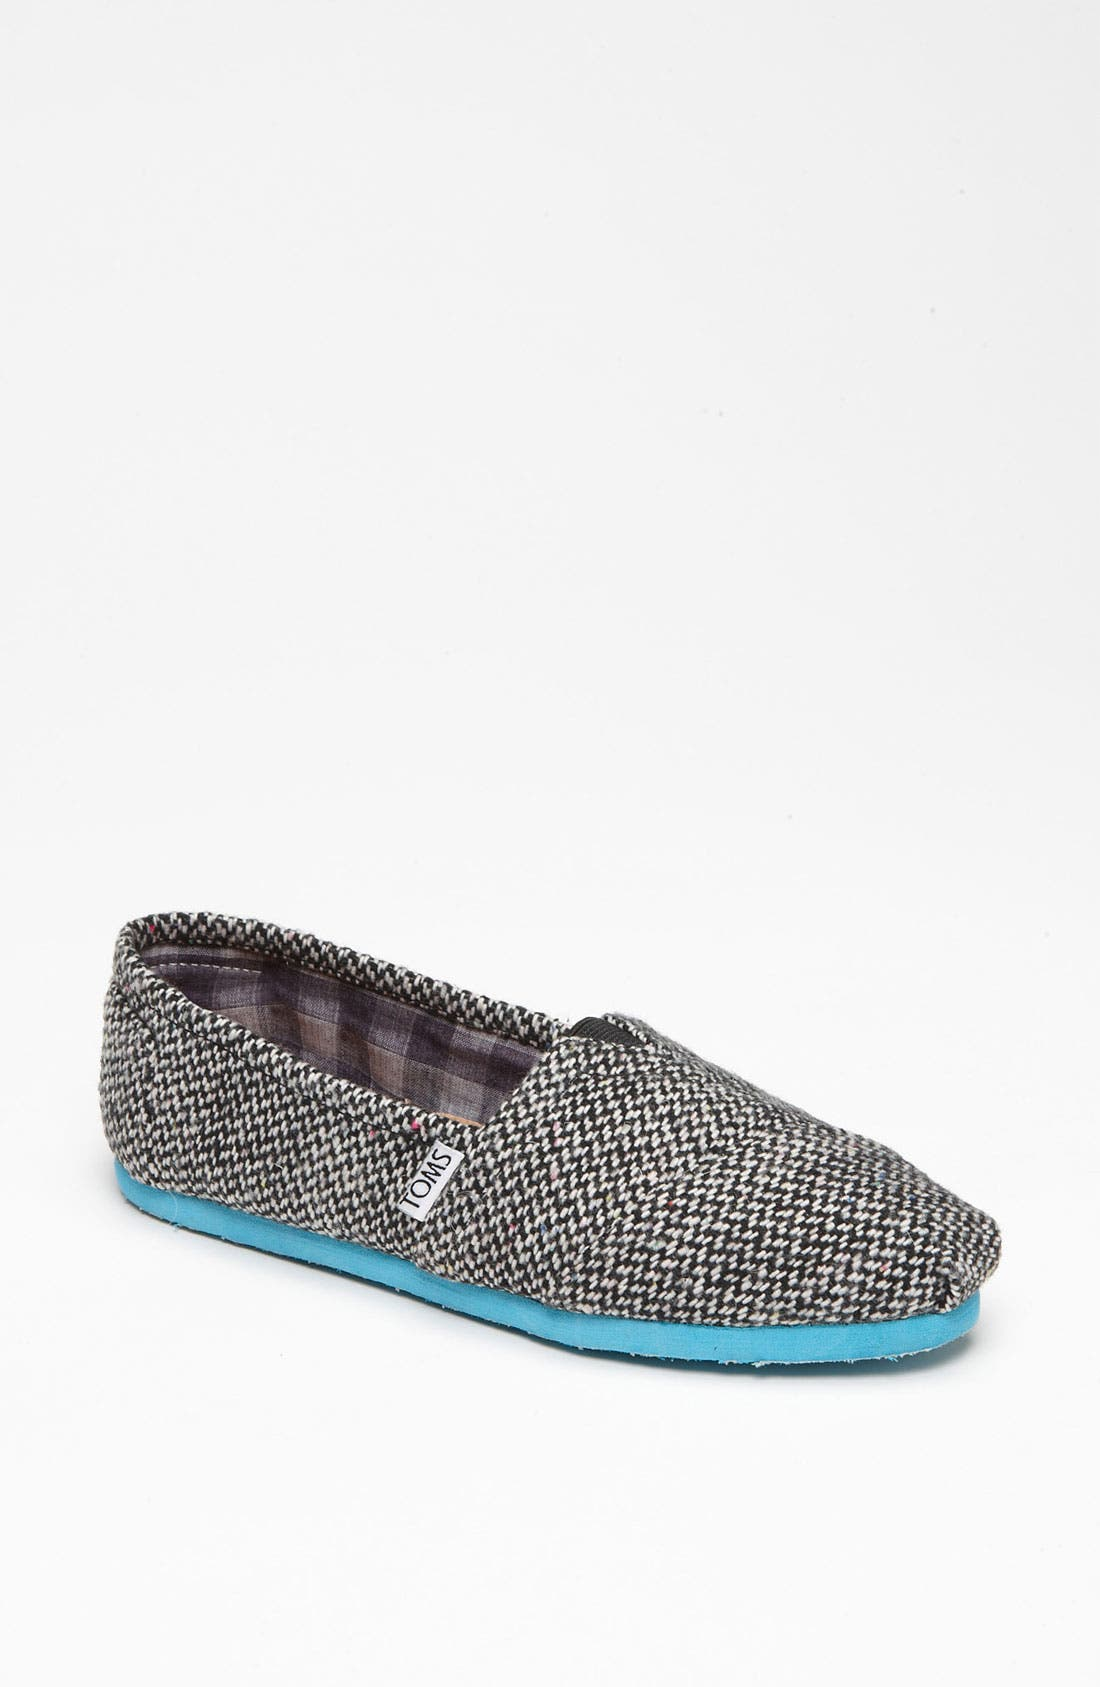 Alternate Image 1 Selected - TOMS 'Classic - Fleckpop' Slip-On (Women) (Nordstrom Exclusive)